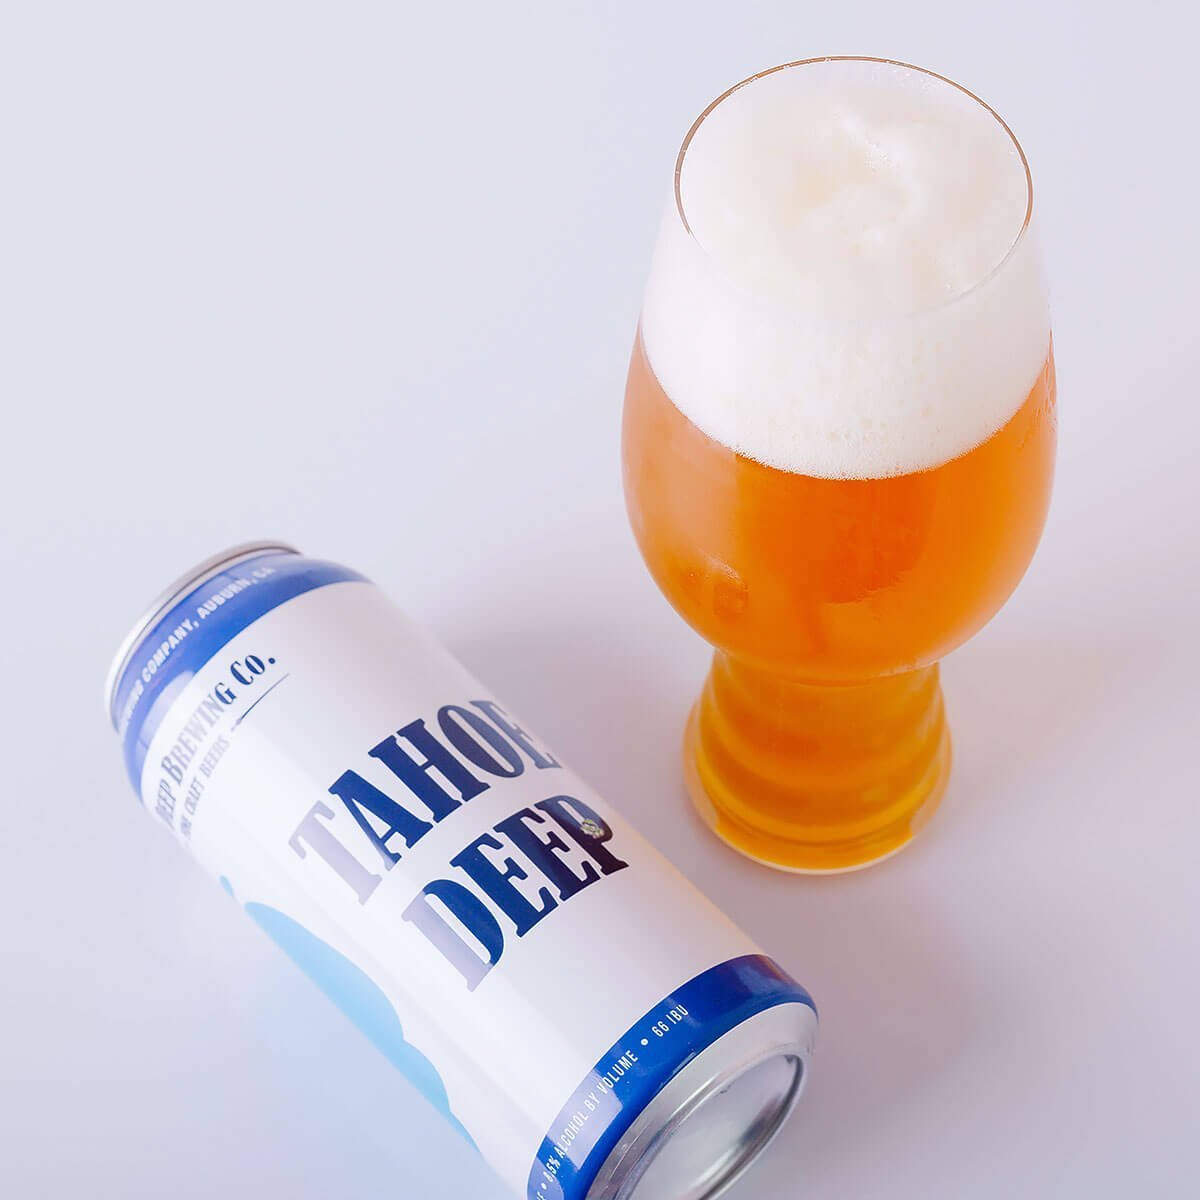 Tahoe Deep is an American Double IPA brewed by Knee Deep Brewing Co. whose hop-centered palate blends pine, citrus, spicy, and resinous hops with fruits and toasted bread.